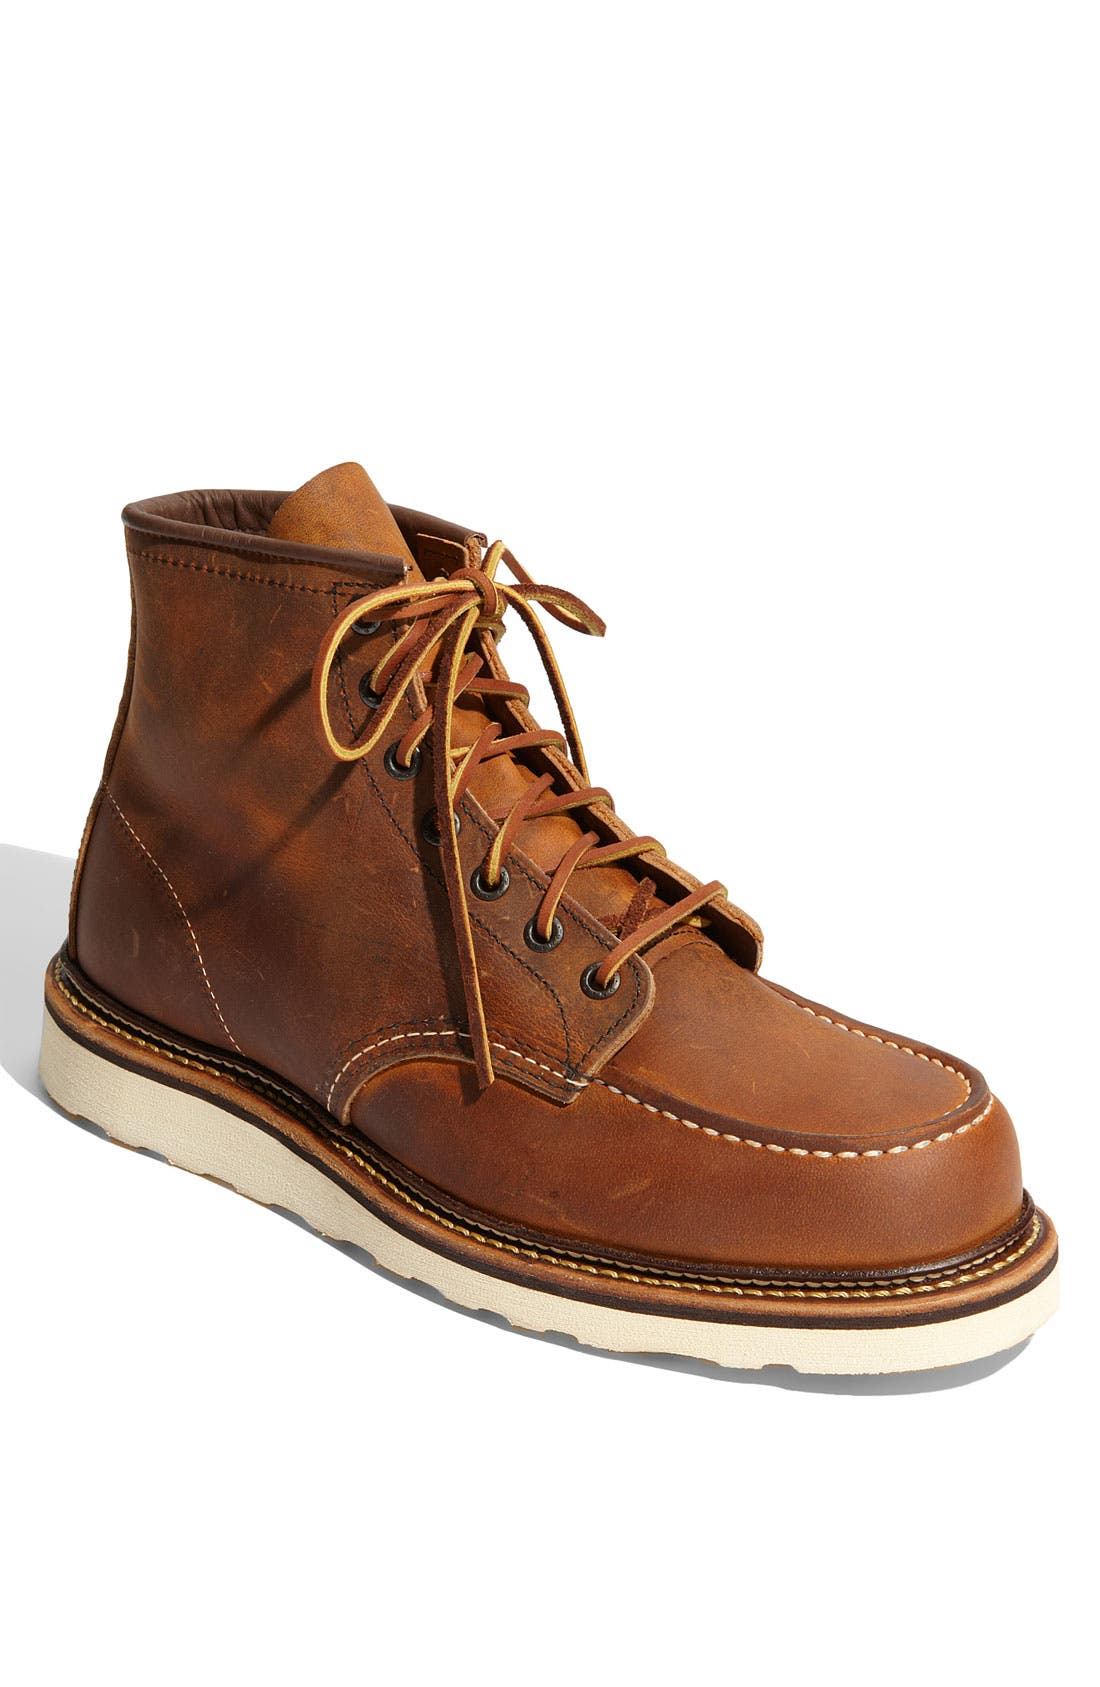 Main Image - Red Wing 1907 Classic Moc Boot (Men)